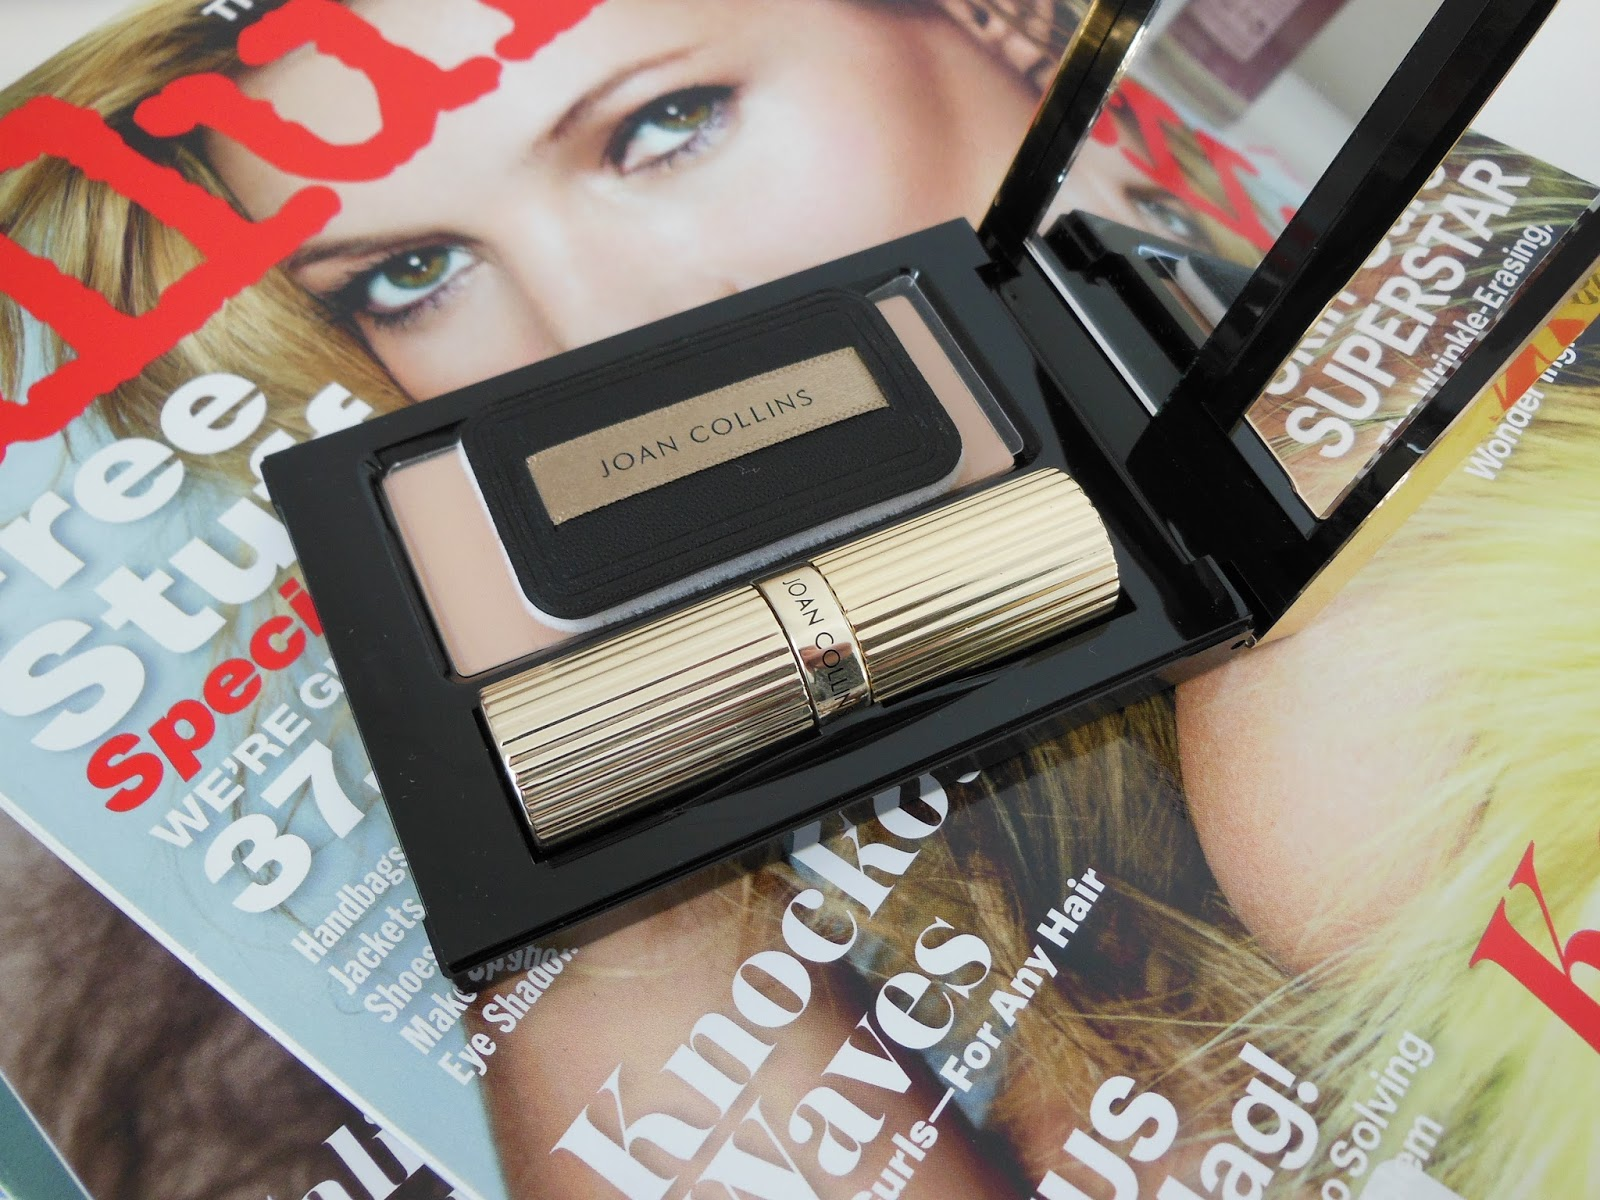 Joan Collins timeless beauty makeup paparazzi lip and powder duo